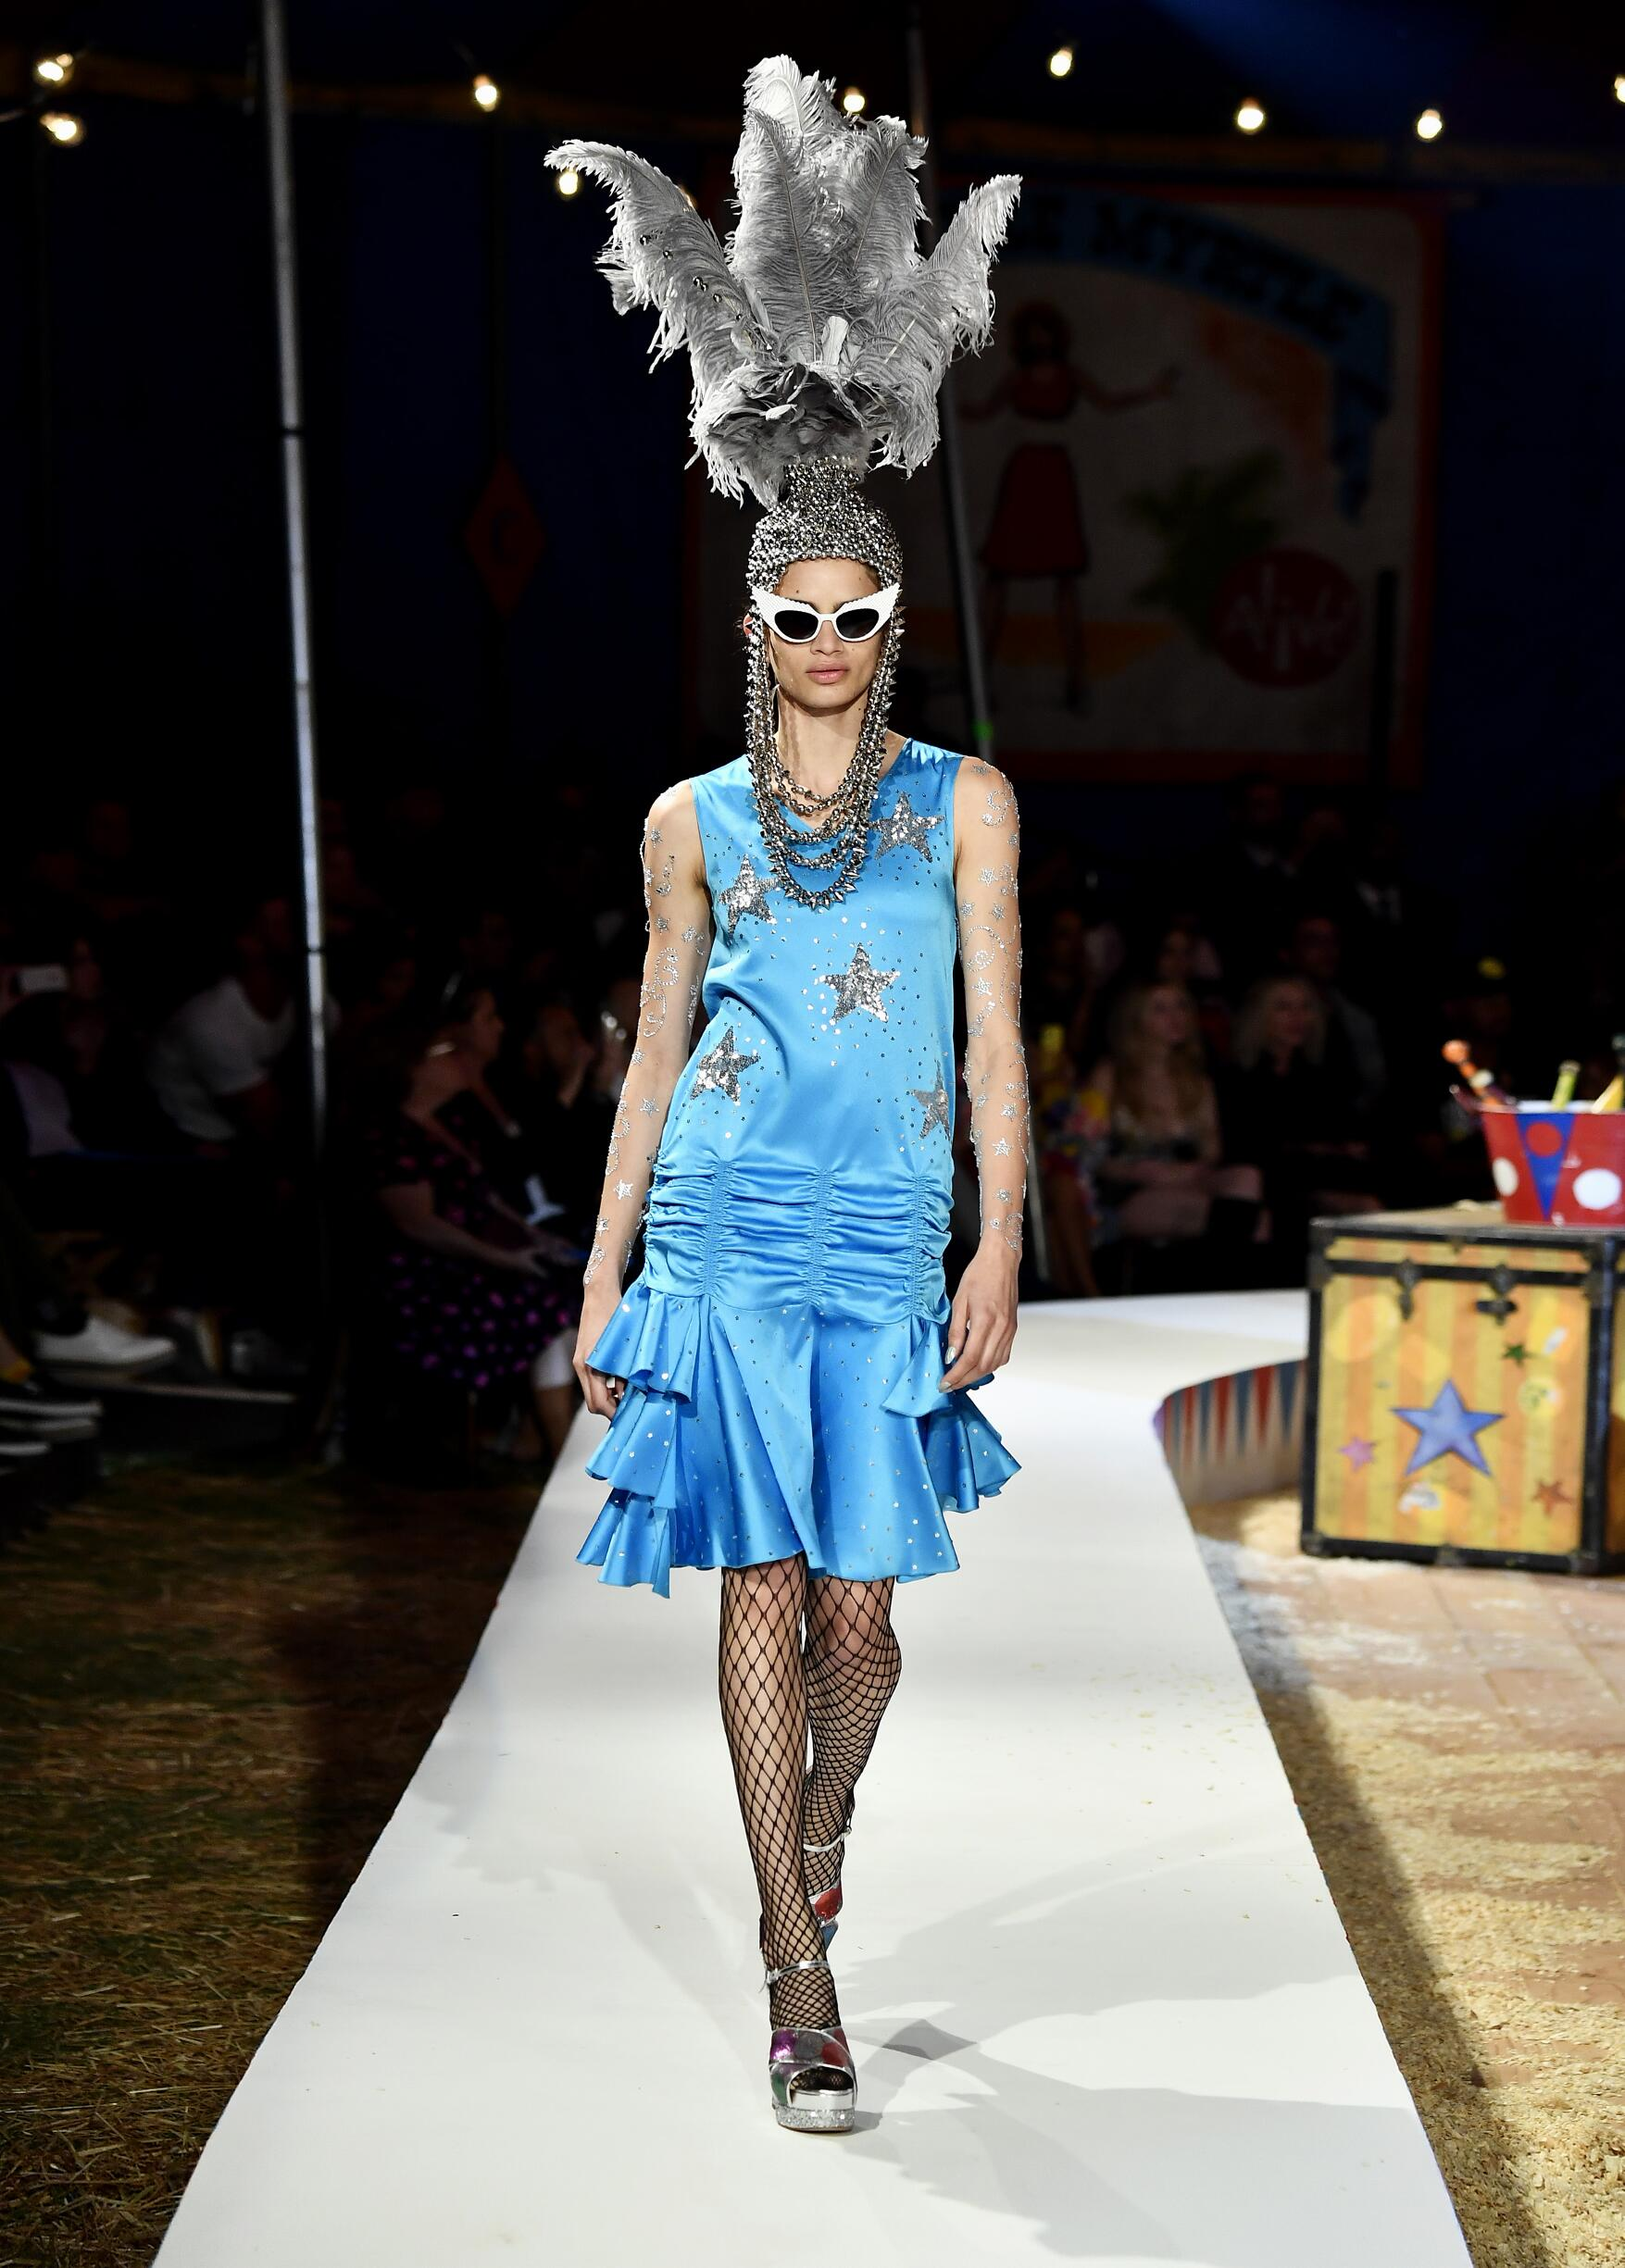 Moschino Spring Summer 2019 Menswear and Women's Resort Collection Look 83 Los Angeles